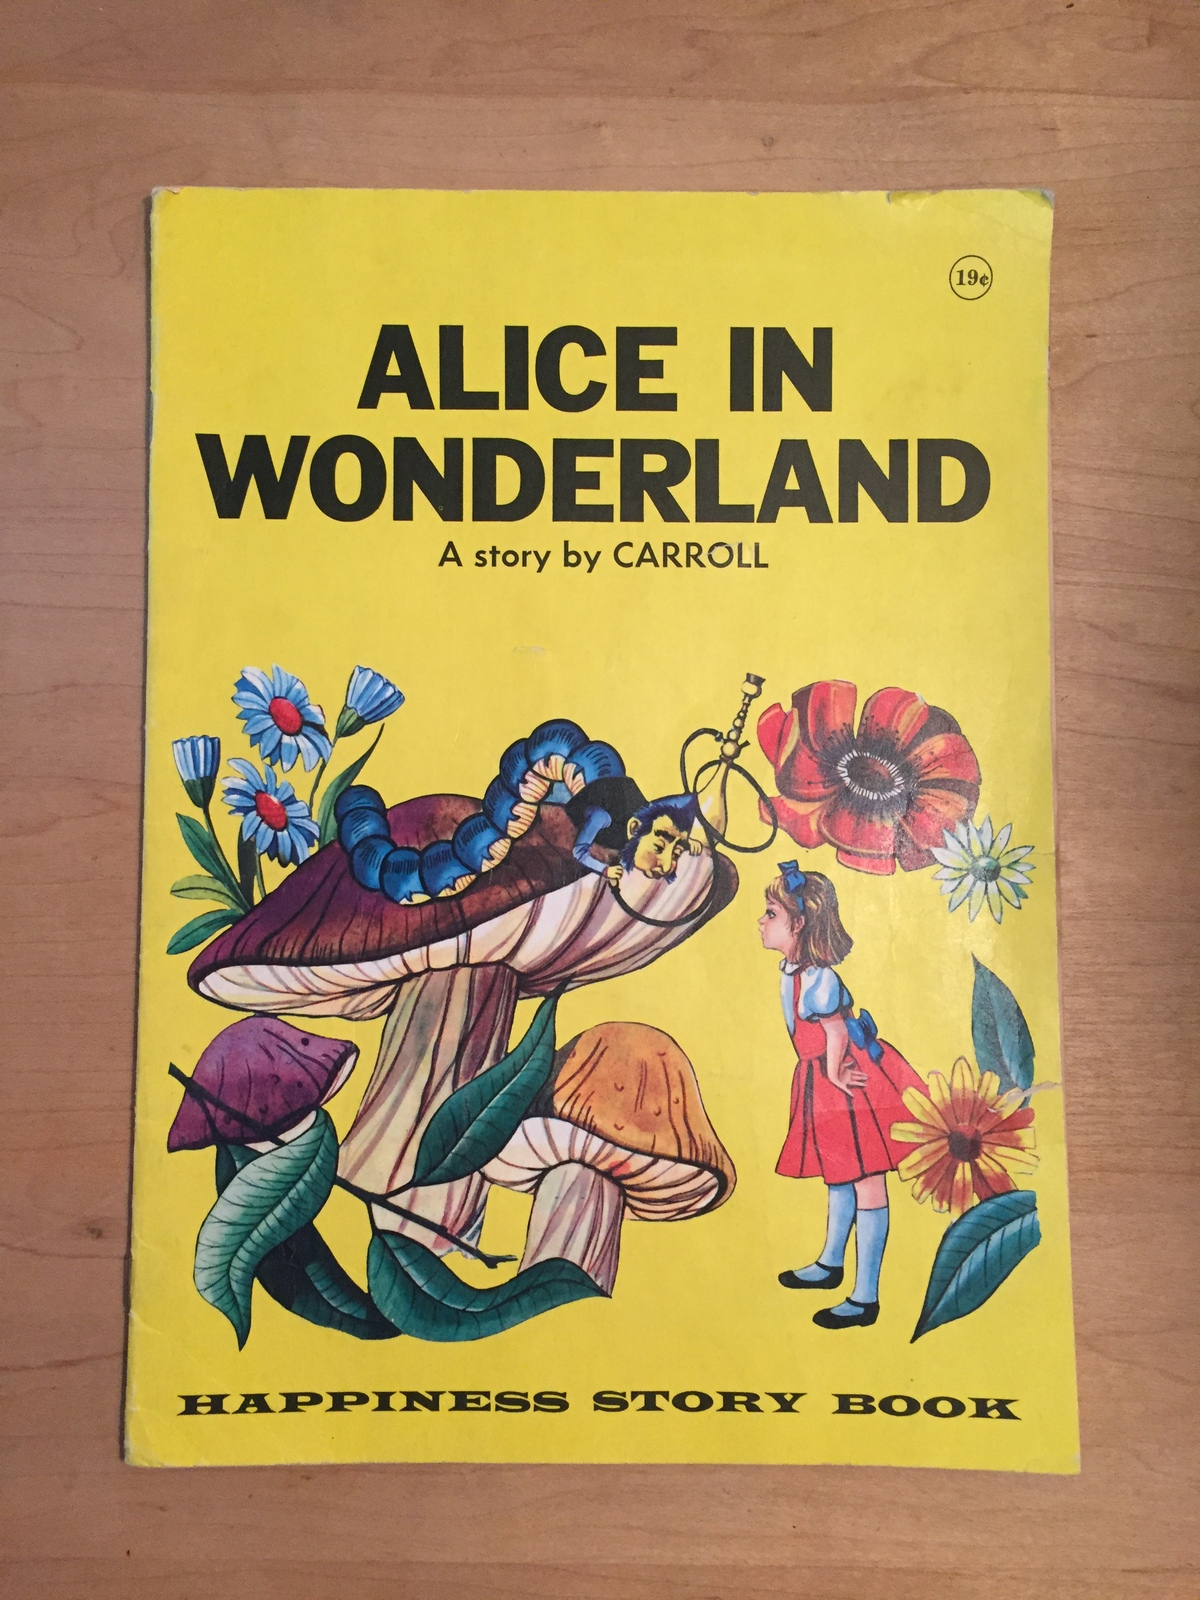 1969 Alice in Wonderland Illustrated Happiness Story Book